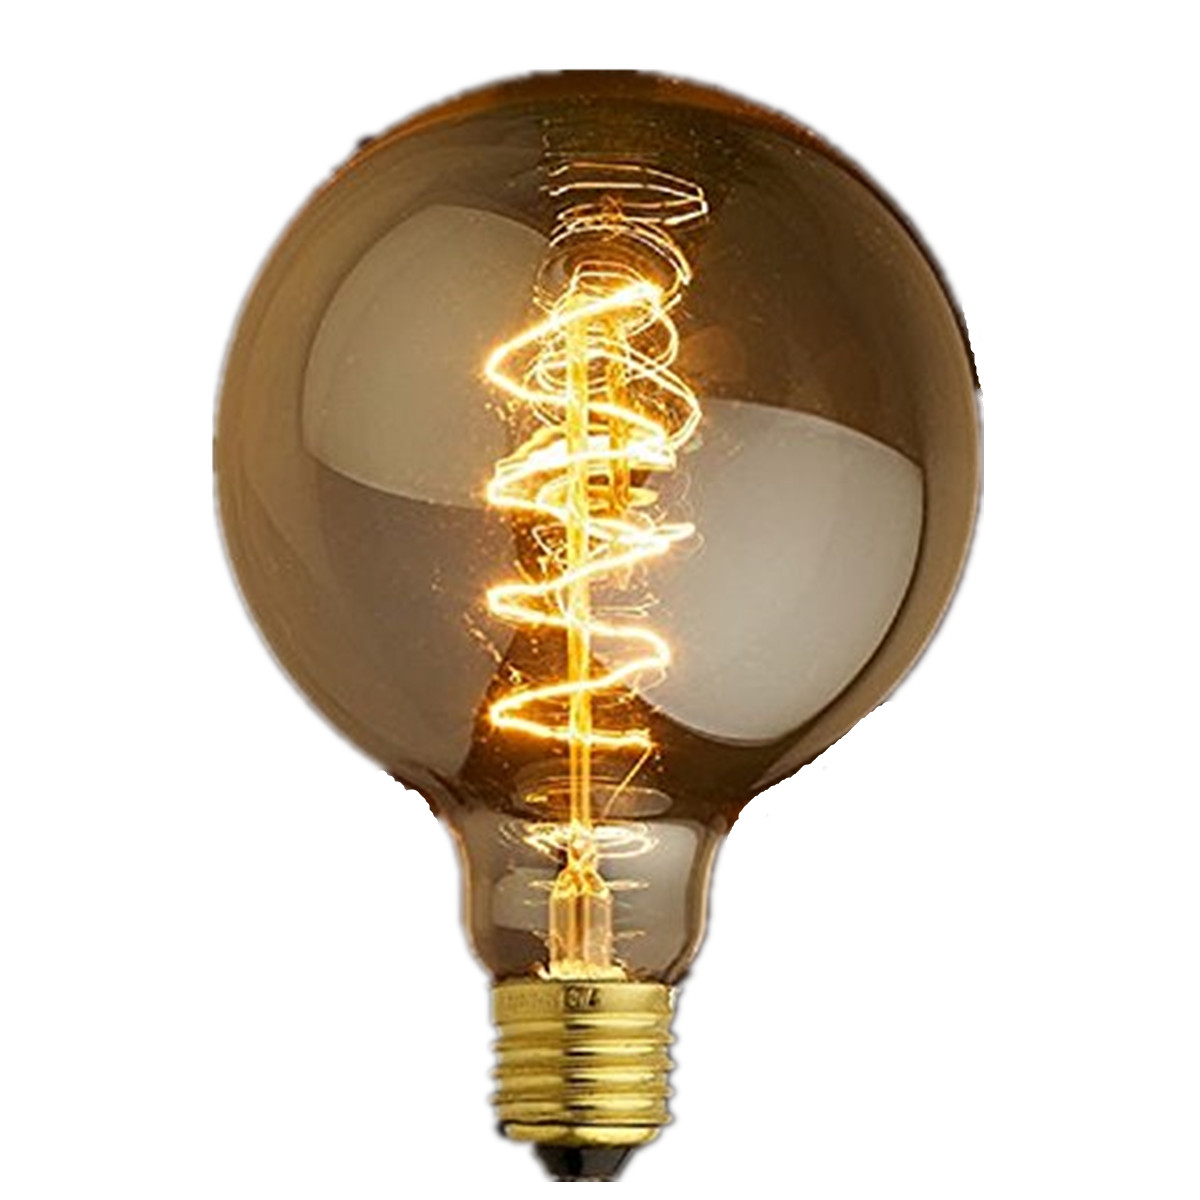 e27 40w r tro vintage edison ampoule tungst ne lampe incandescente filament 220v ebay. Black Bedroom Furniture Sets. Home Design Ideas